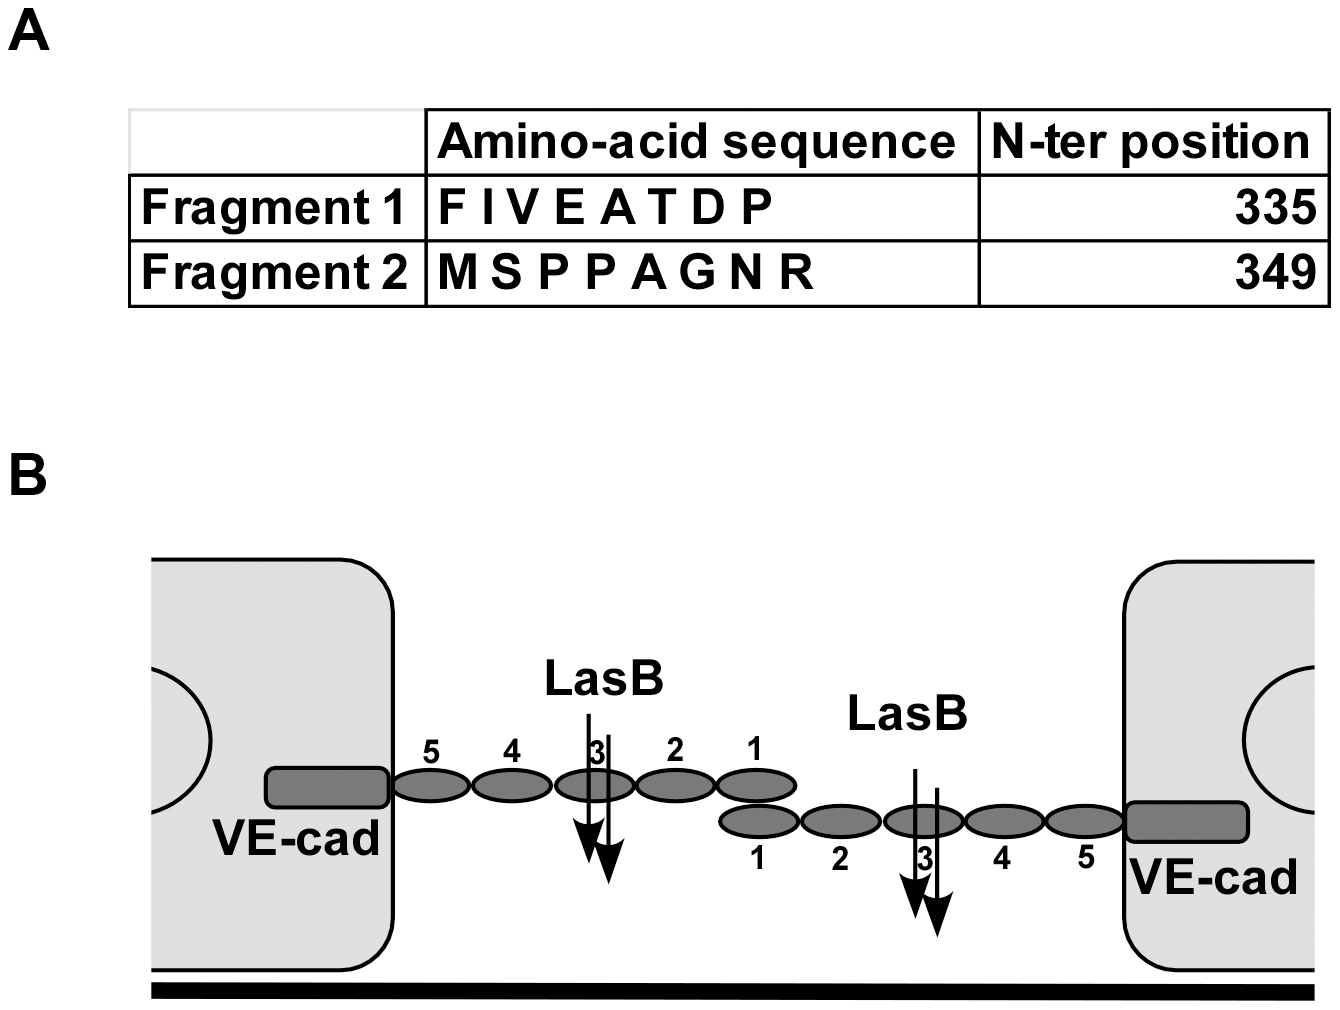 LasB cleavage sites in VE-cadherin extracellular domain.